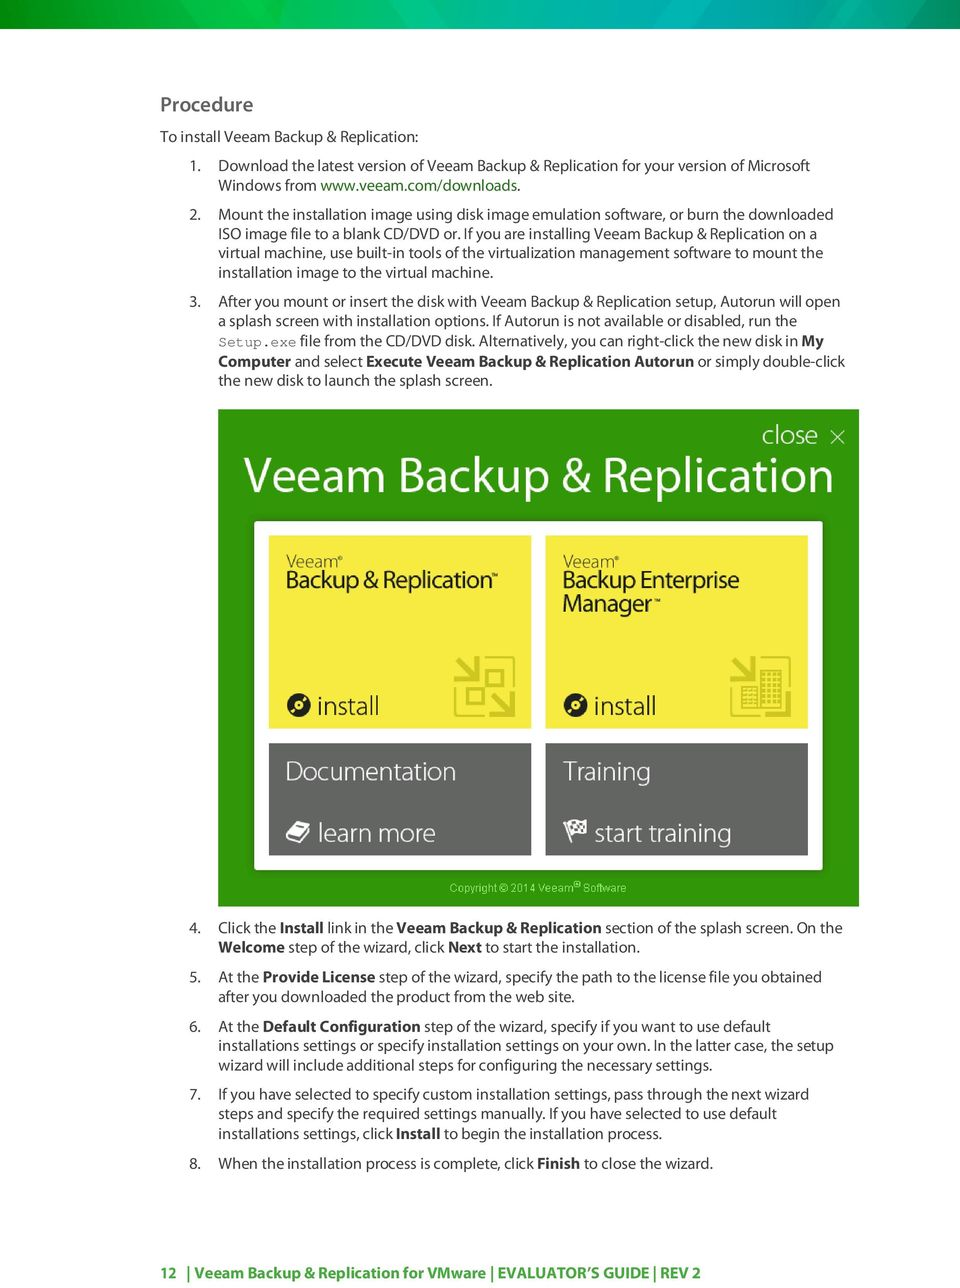 If you are installing Veeam Backup & Replication on a virtual machine, use built-in tools of the virtualization management software to mount the installation image to the virtual machine. 3.